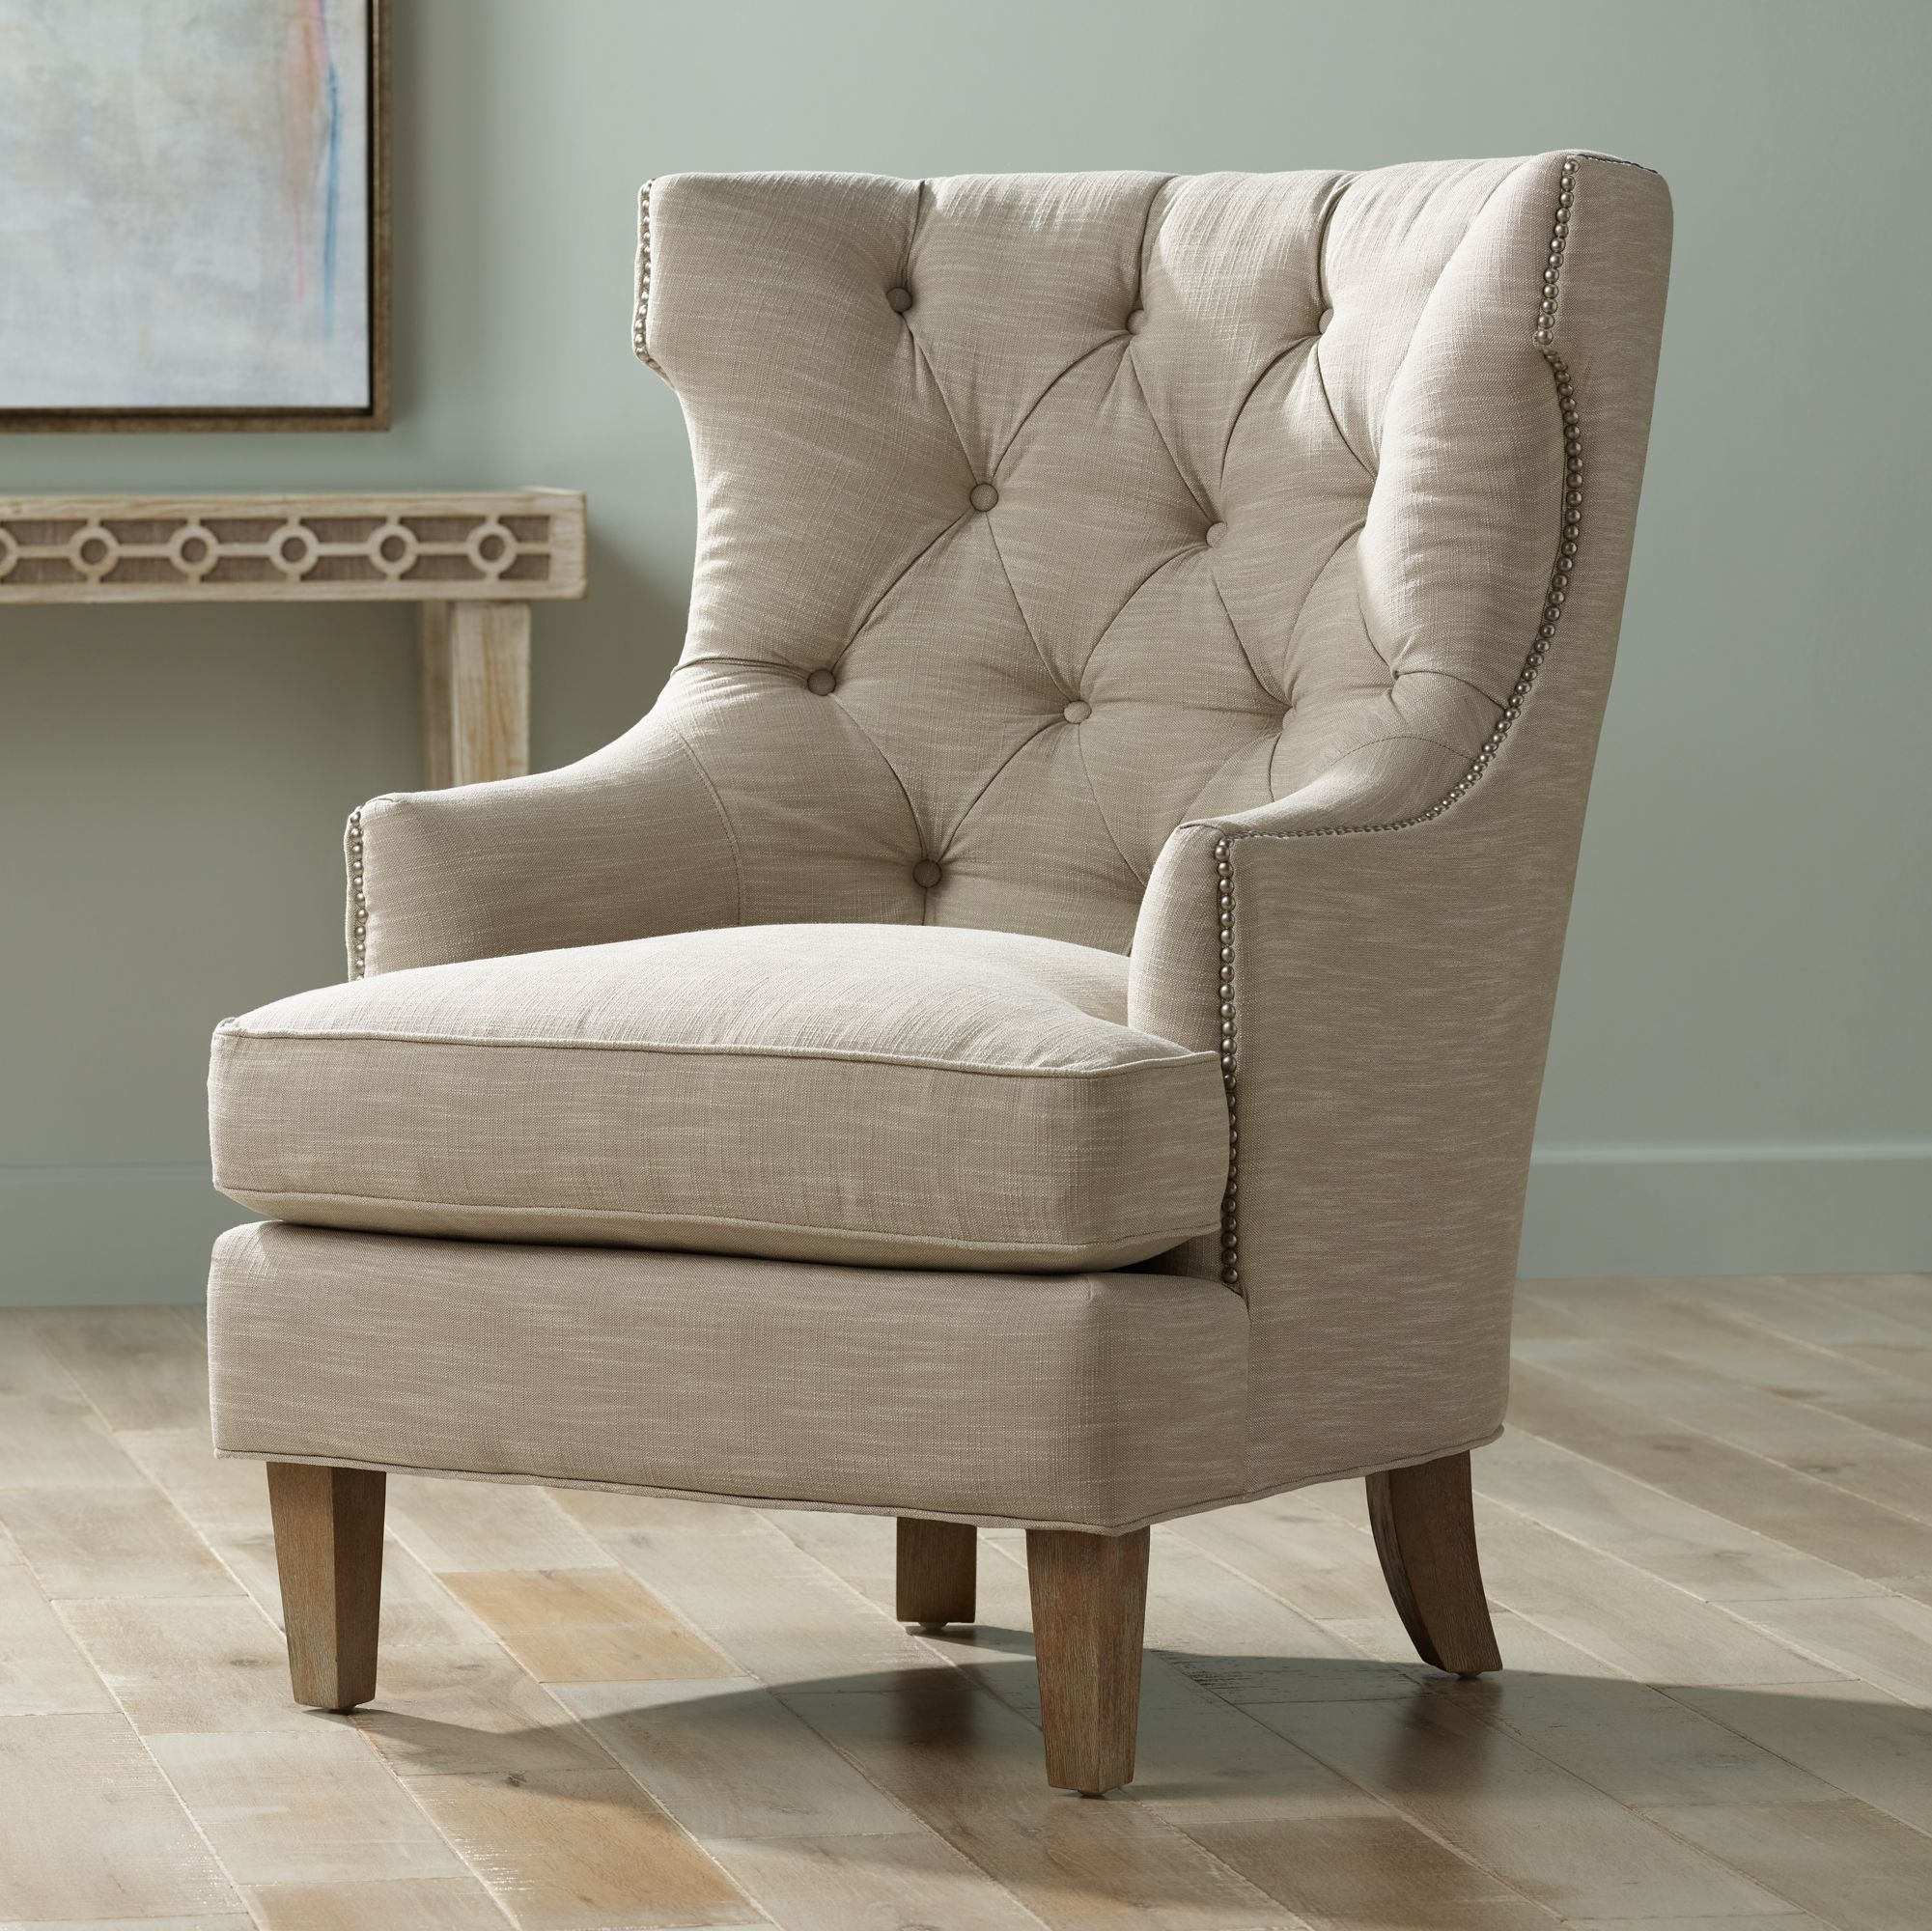 Good Reese Studio Oatmeal High Back Accent Chair